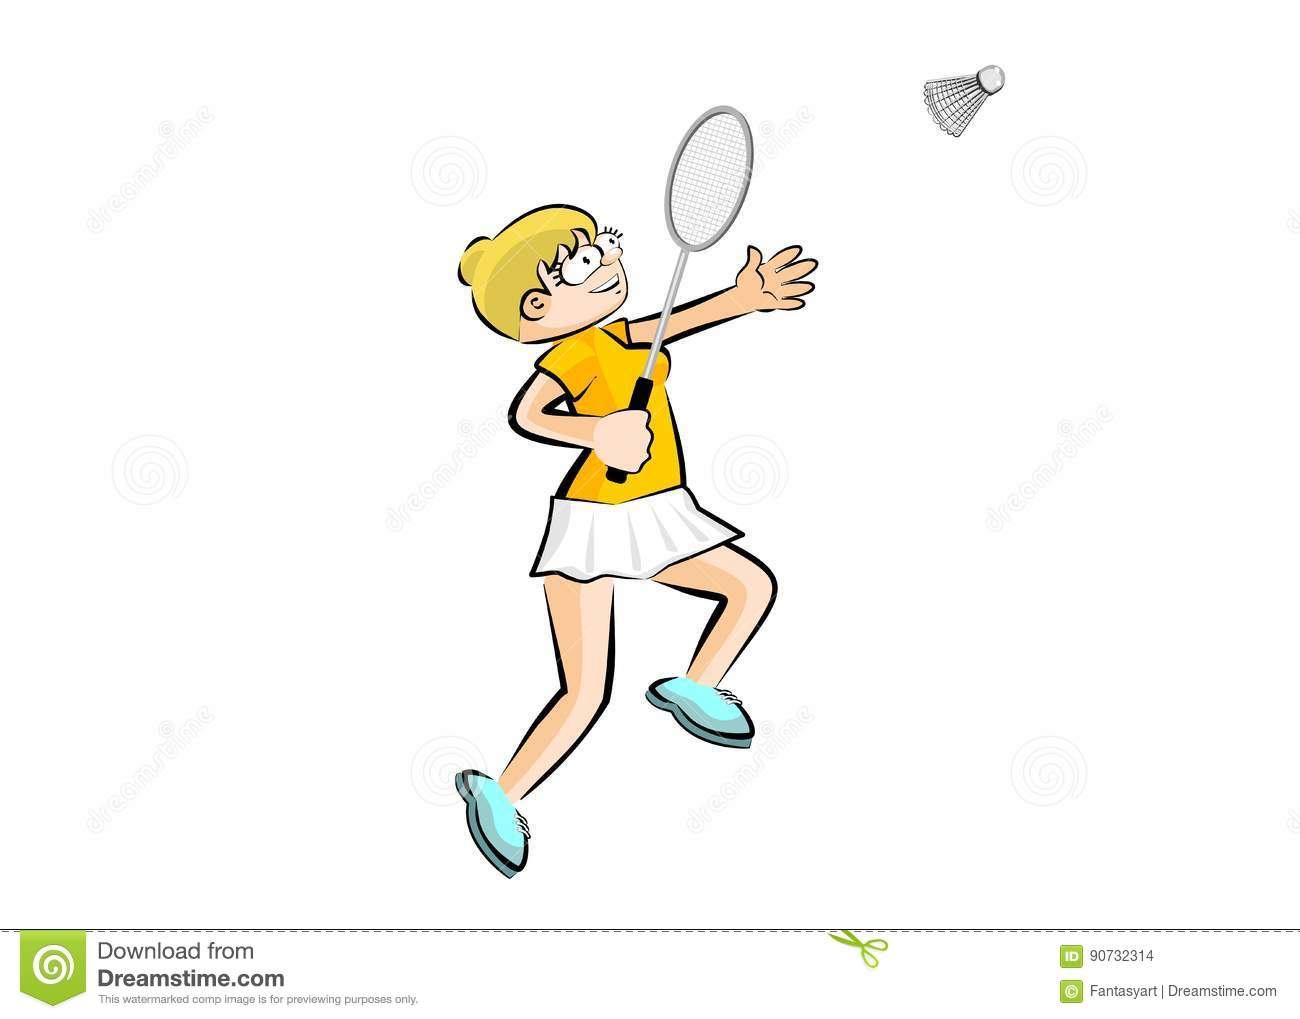 my hobby is playing badminton My hobby is badminton badminton is very easy game, all people can play it,children,student,parent,and oldman can play it badminton is a game who are played by one, or double, or mix (men and women).